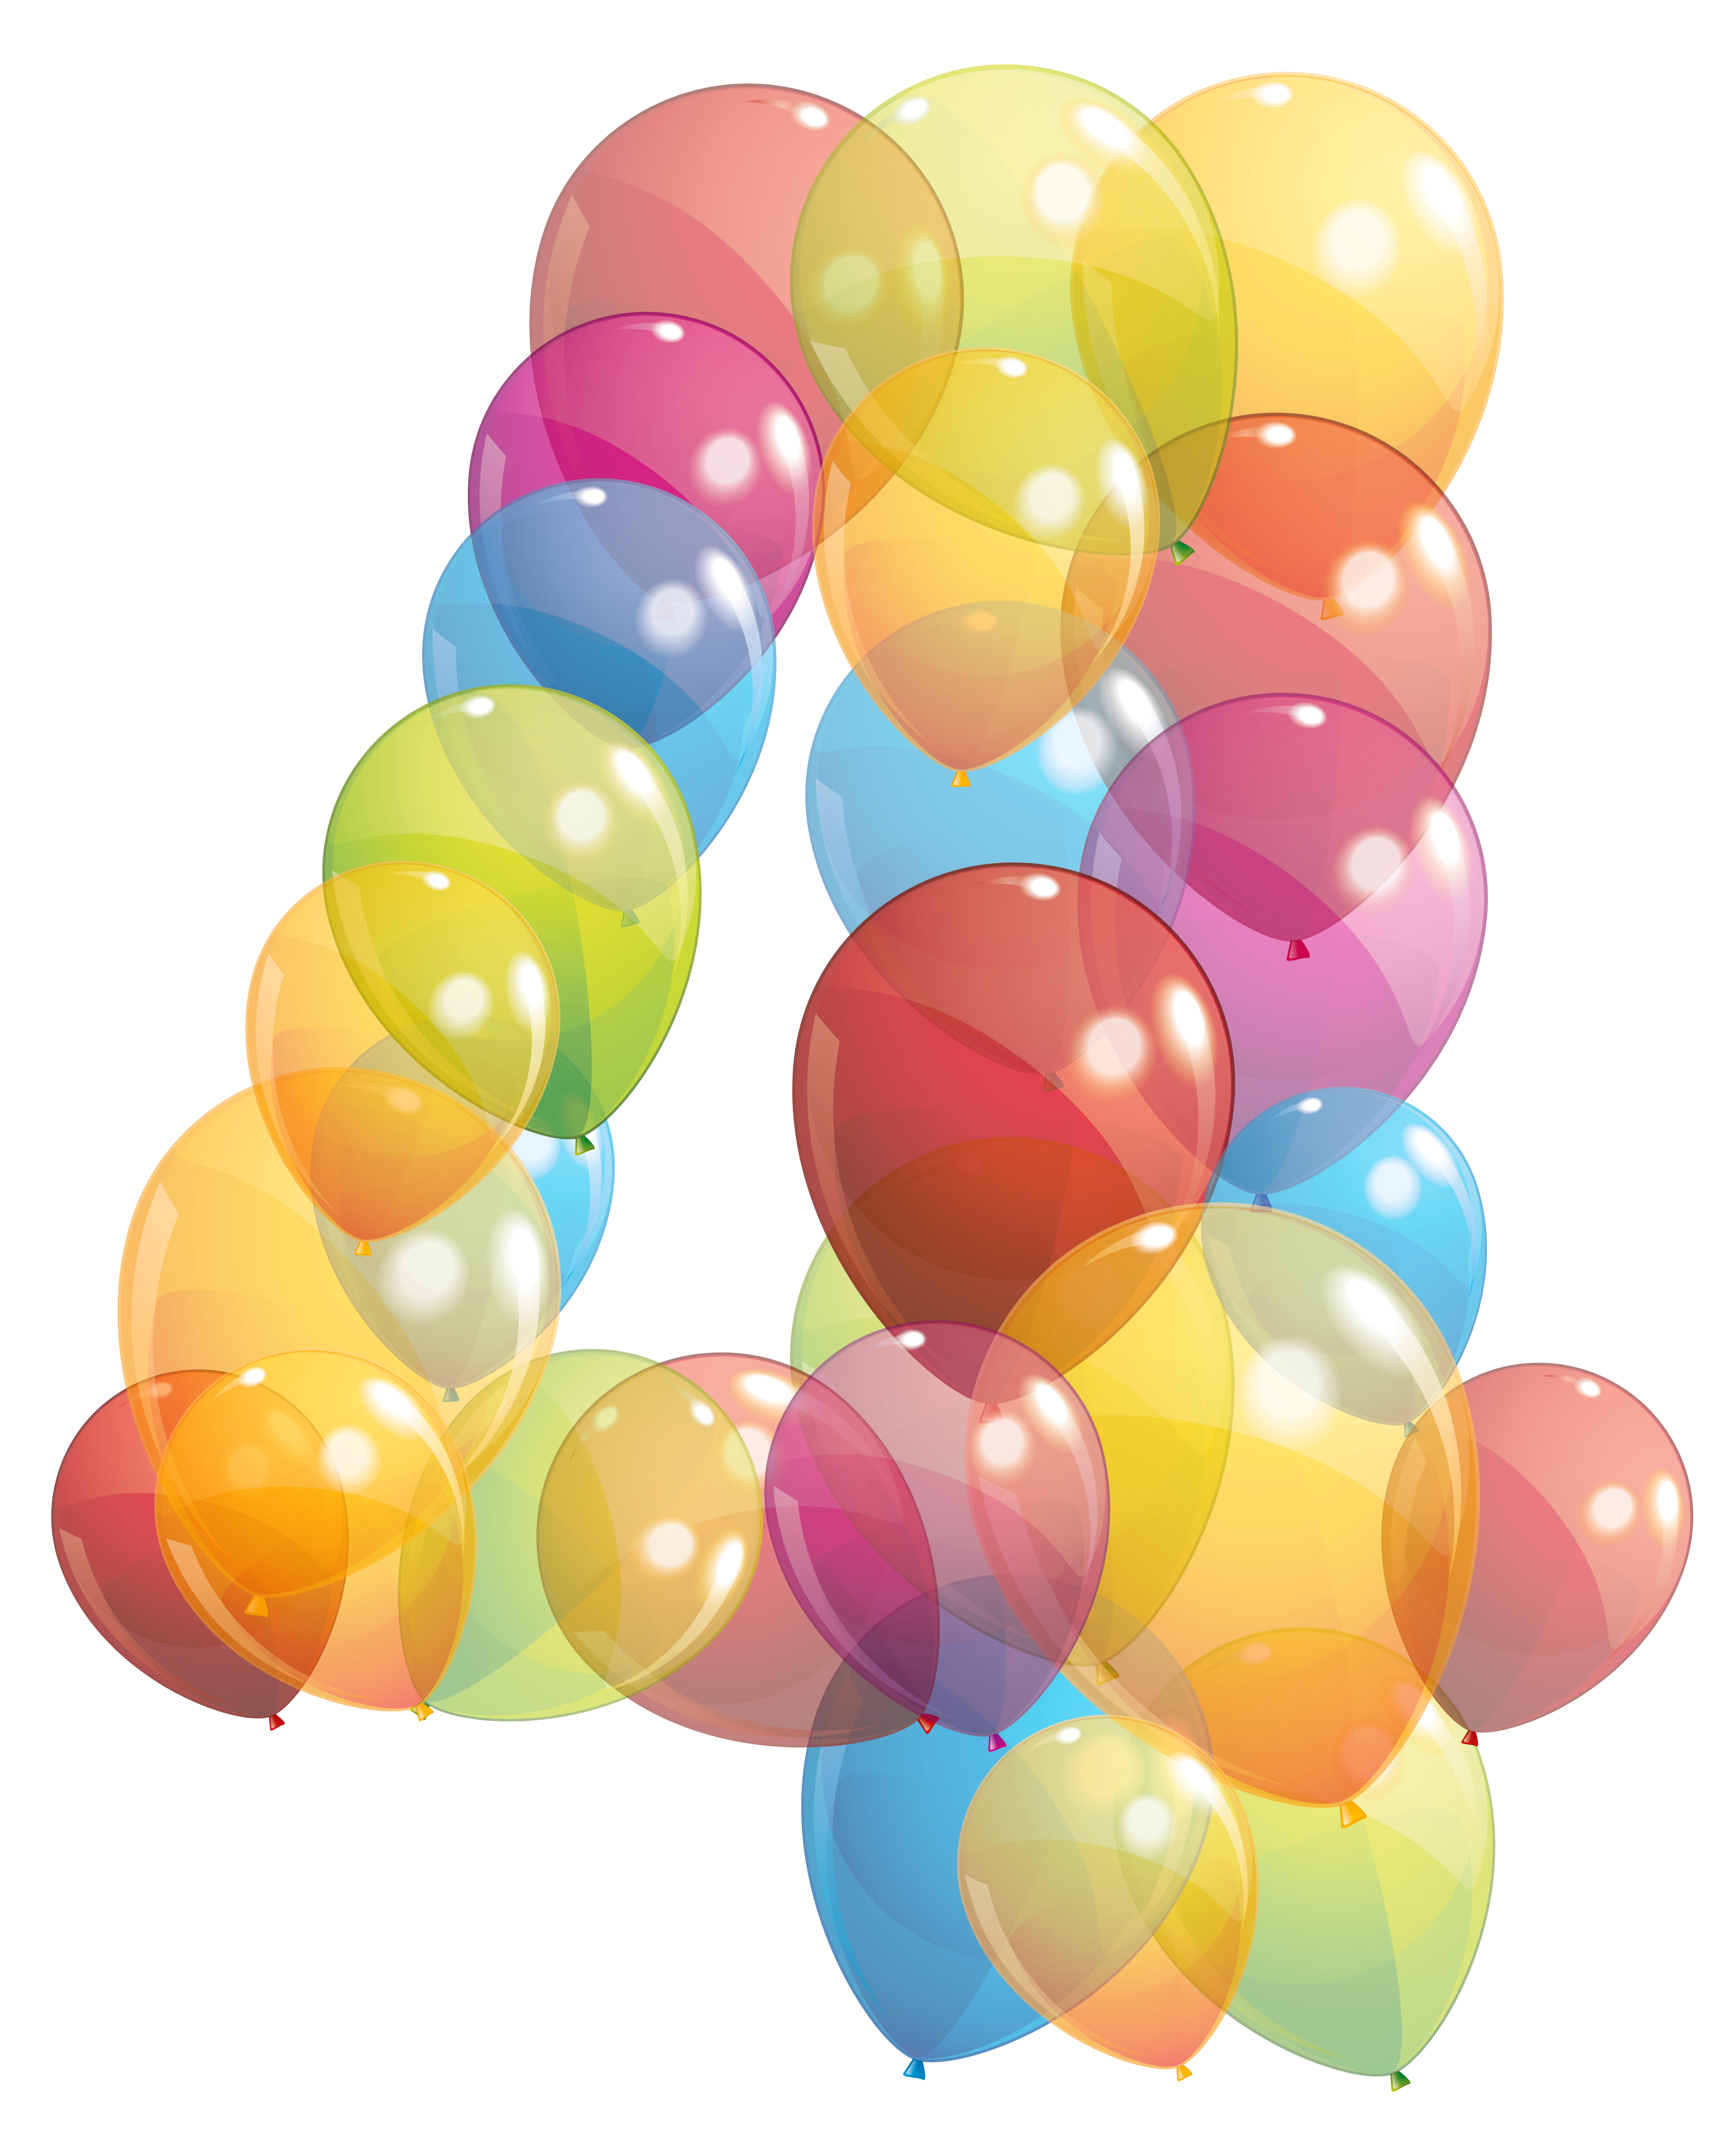 Transparent number of balloons. Four clipart birthday baloon clip art free stock